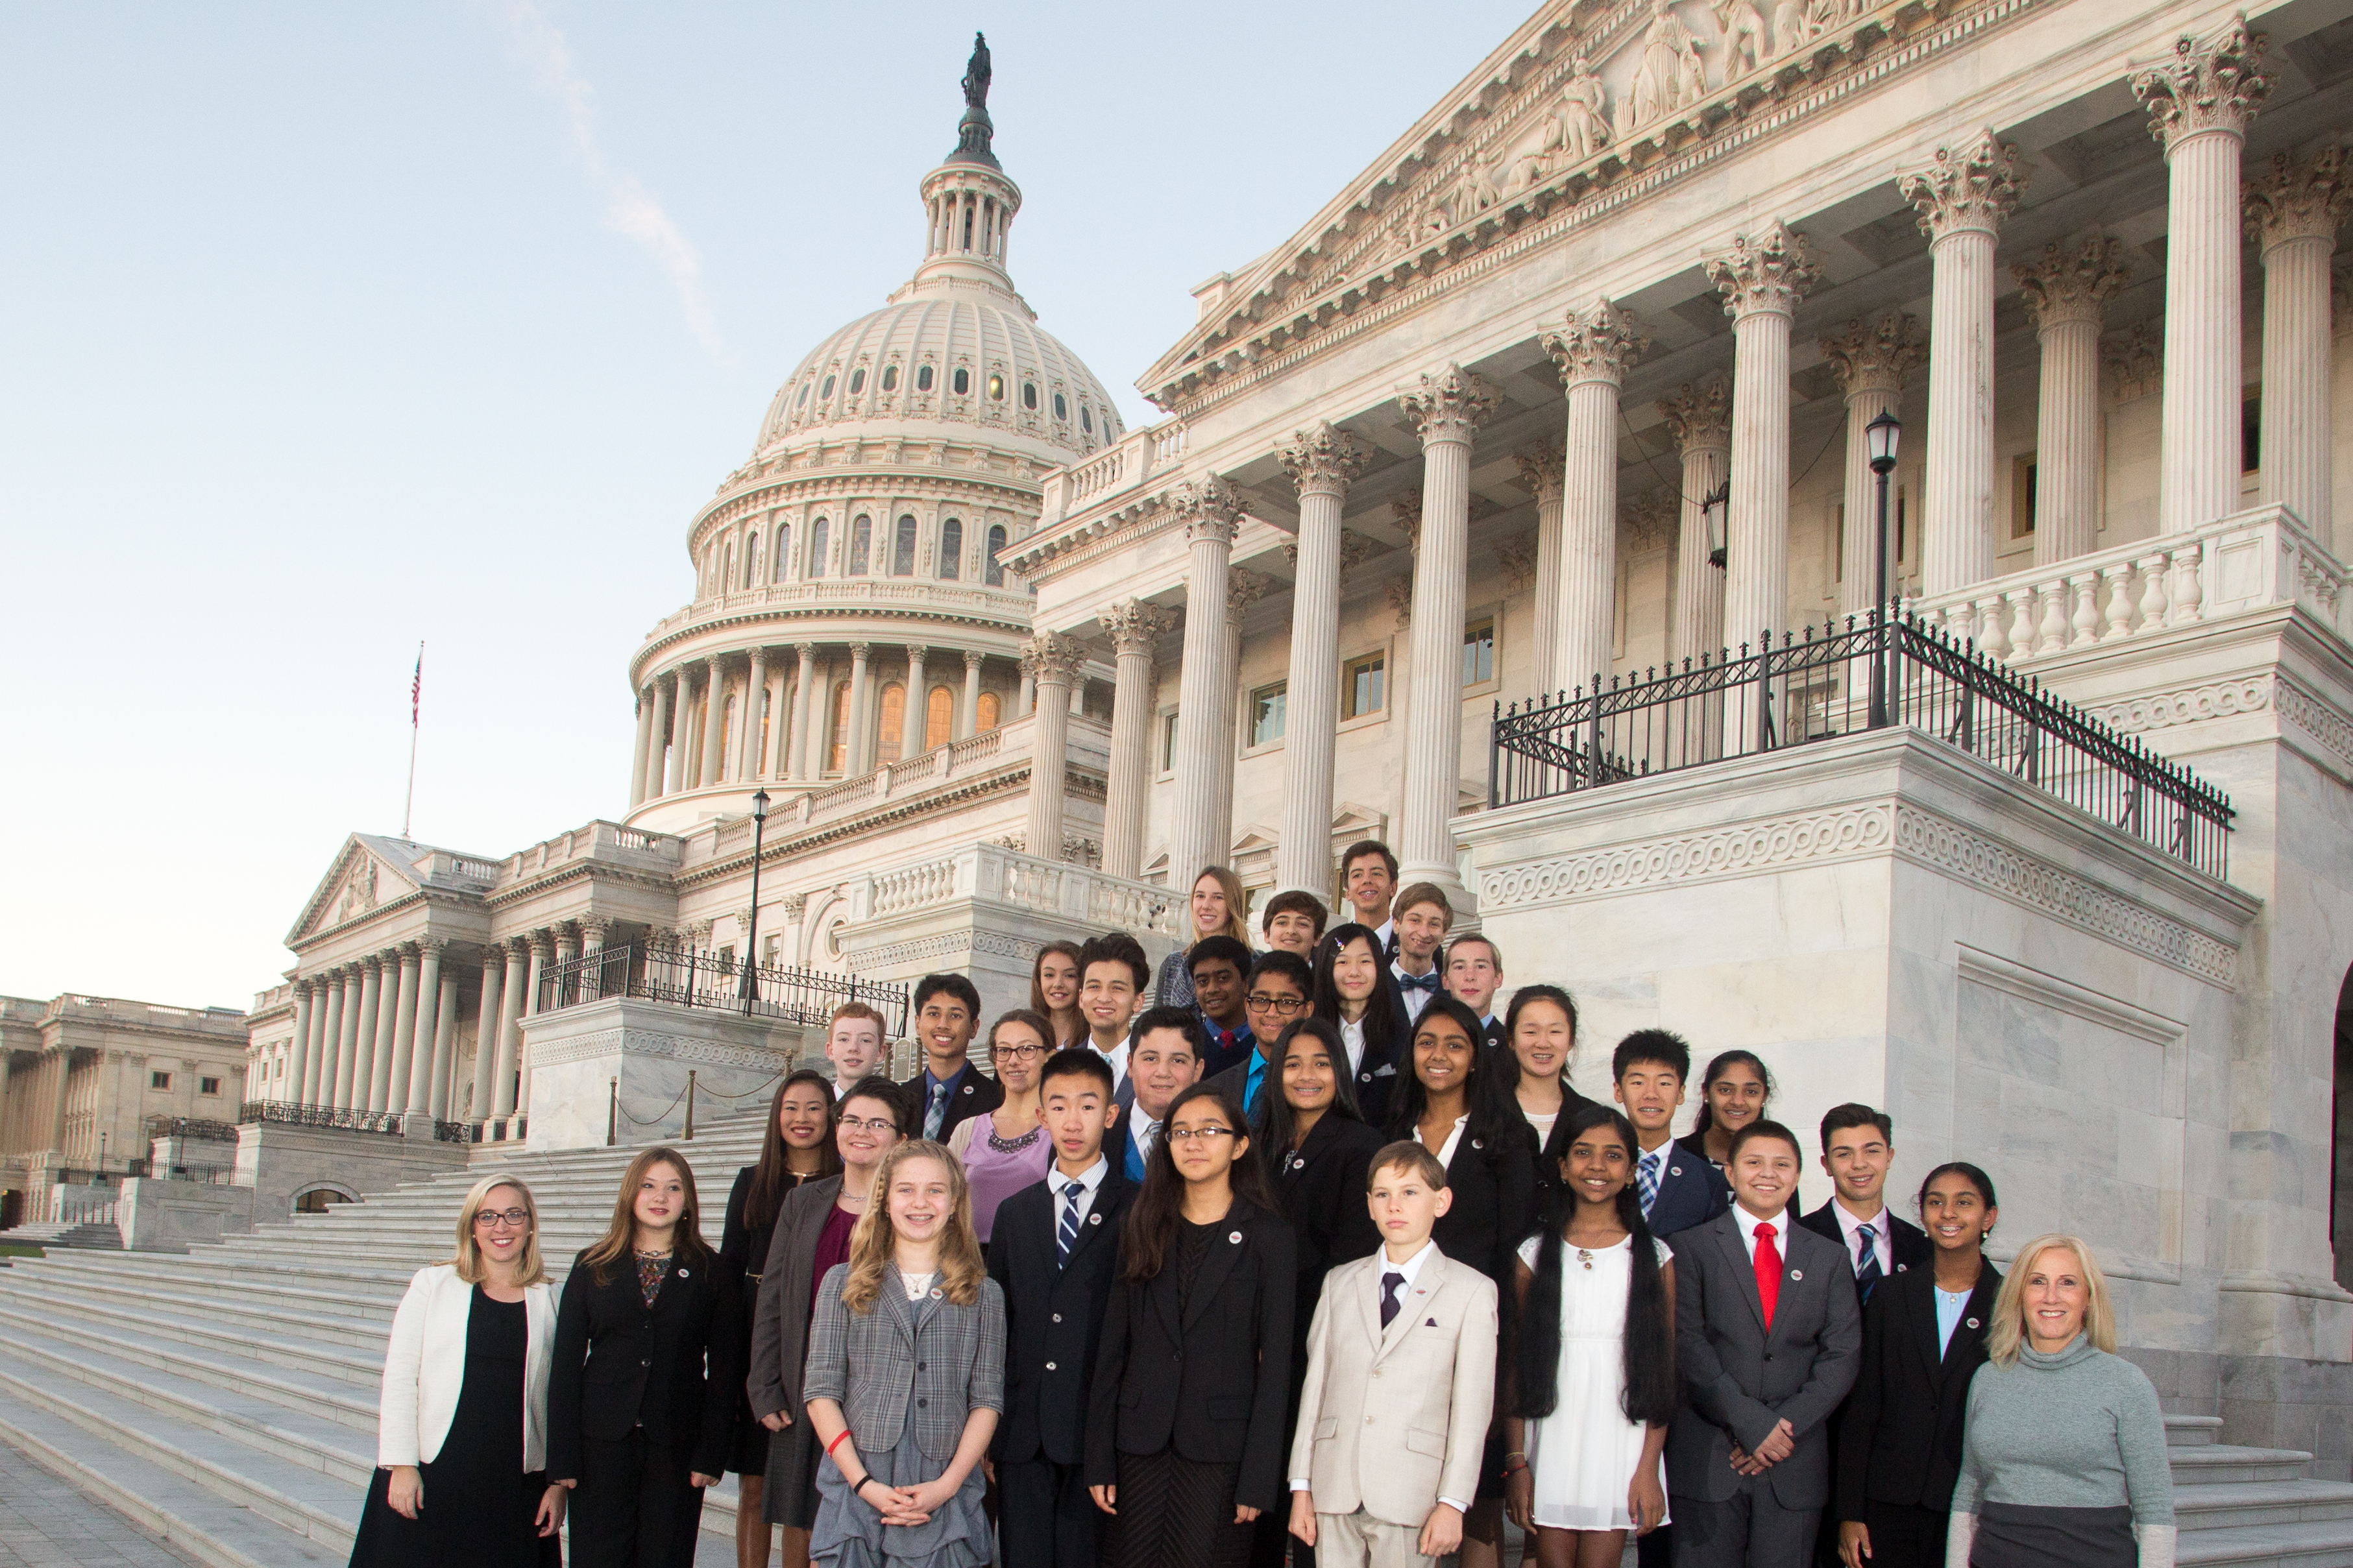 2016 broadcom masters finalists at the capitol